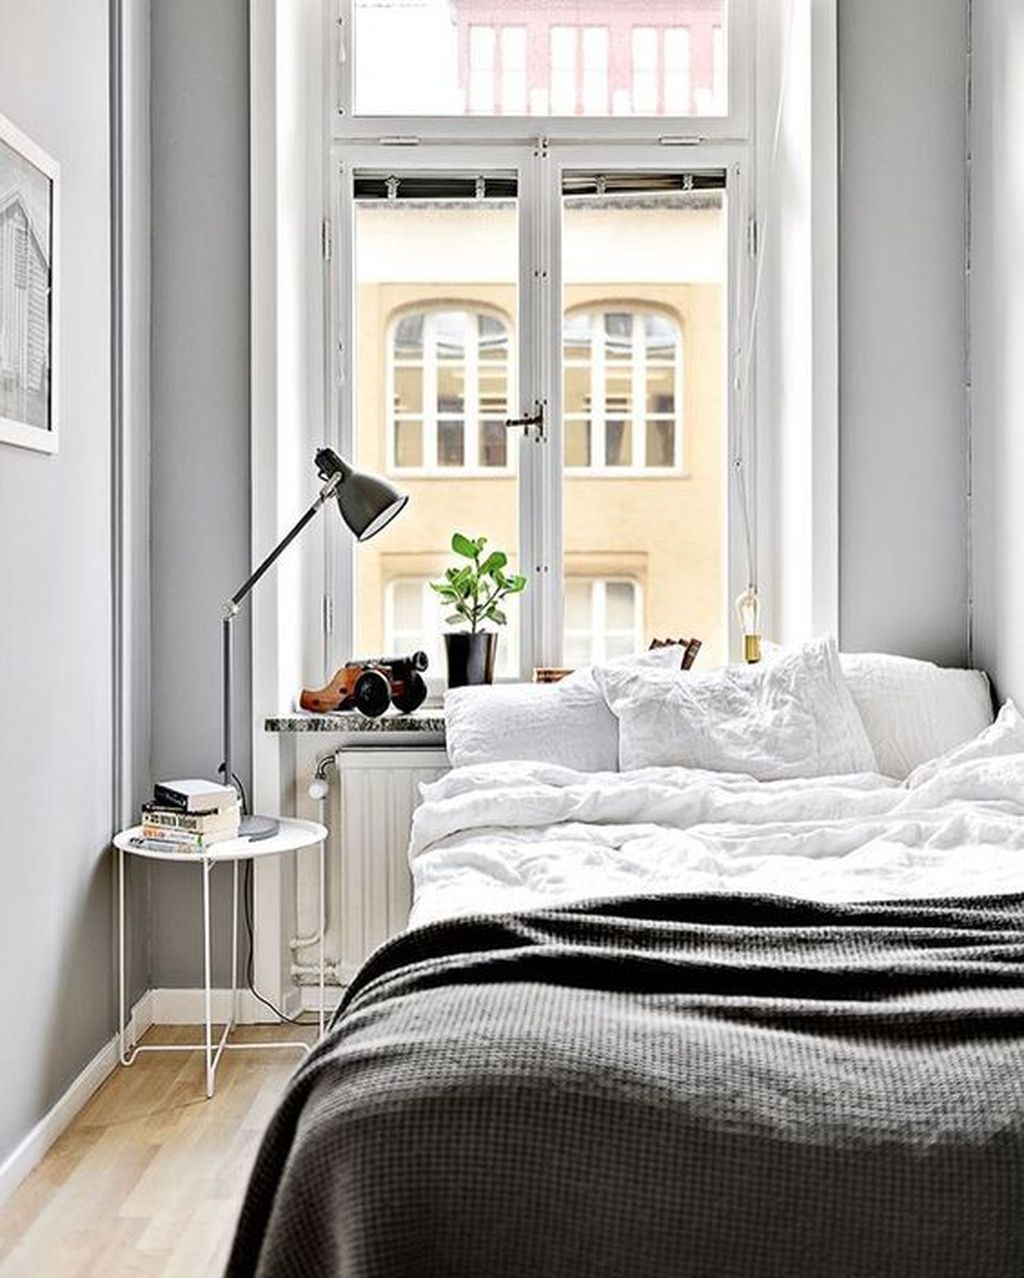 Inspiring Scandinavian Bedroom Design Ideas35